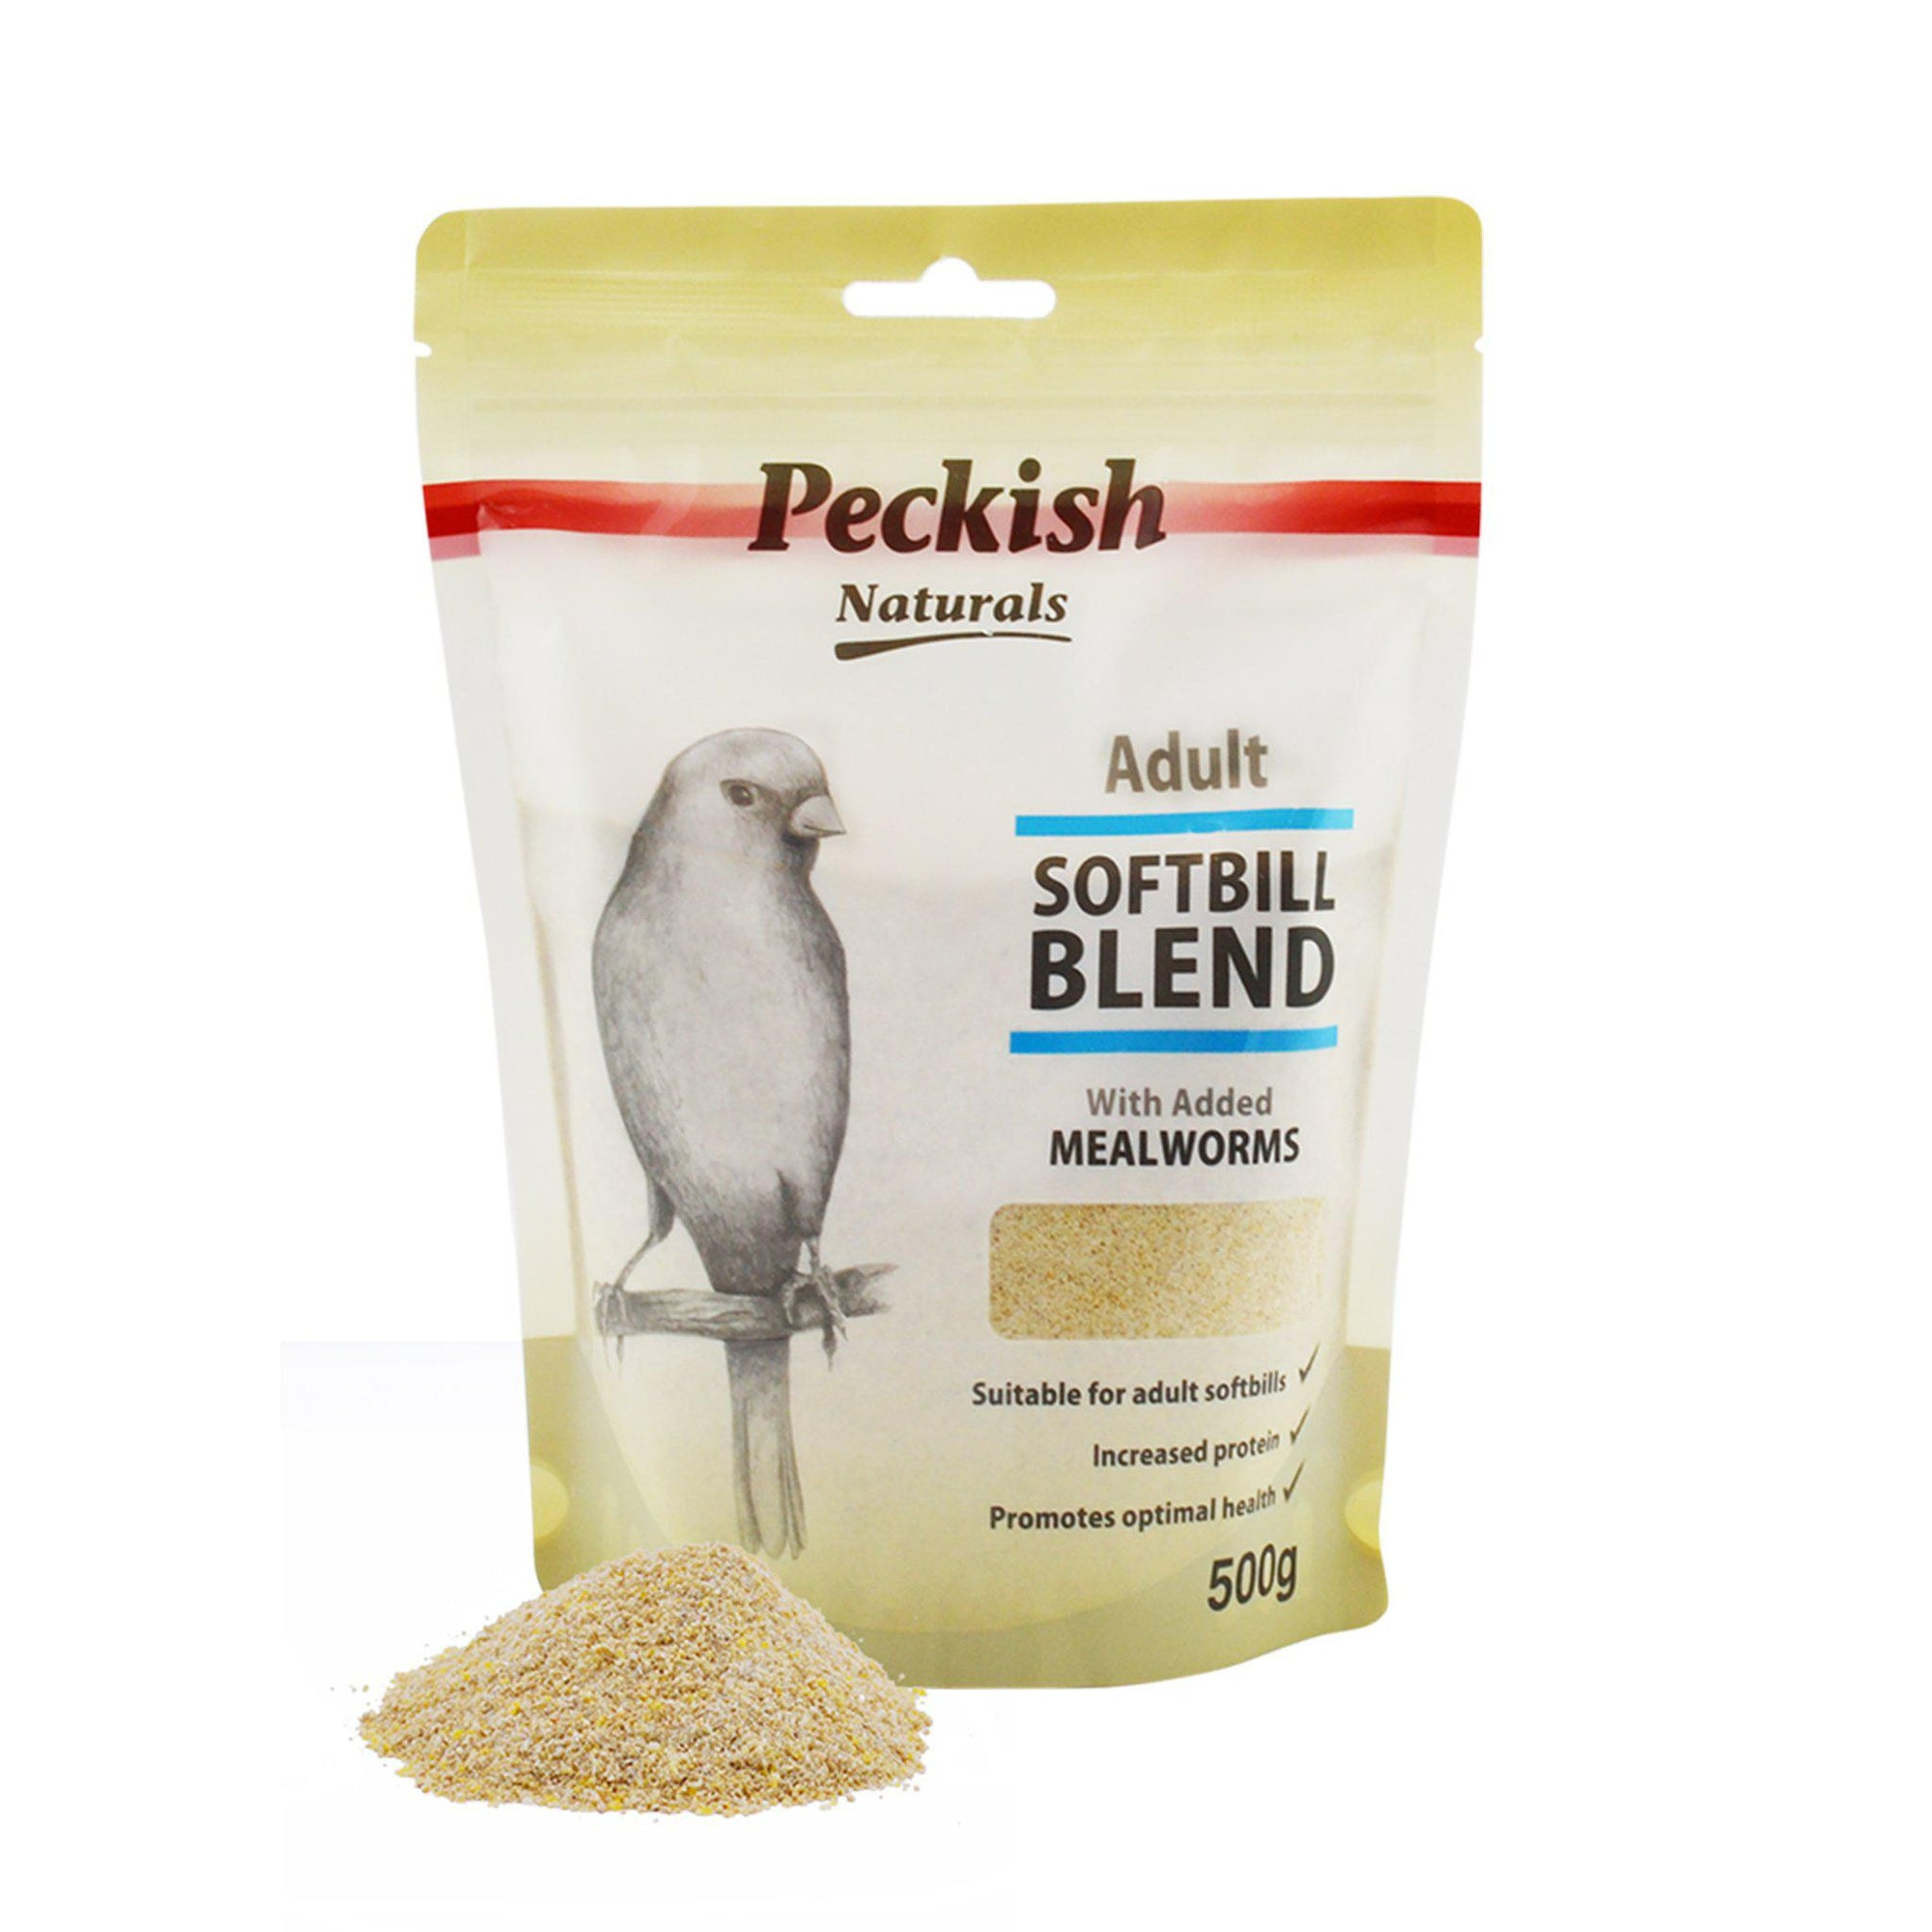 Peckish Naturals Adult Softbill Blend - Mealworm - ComfyPet Products